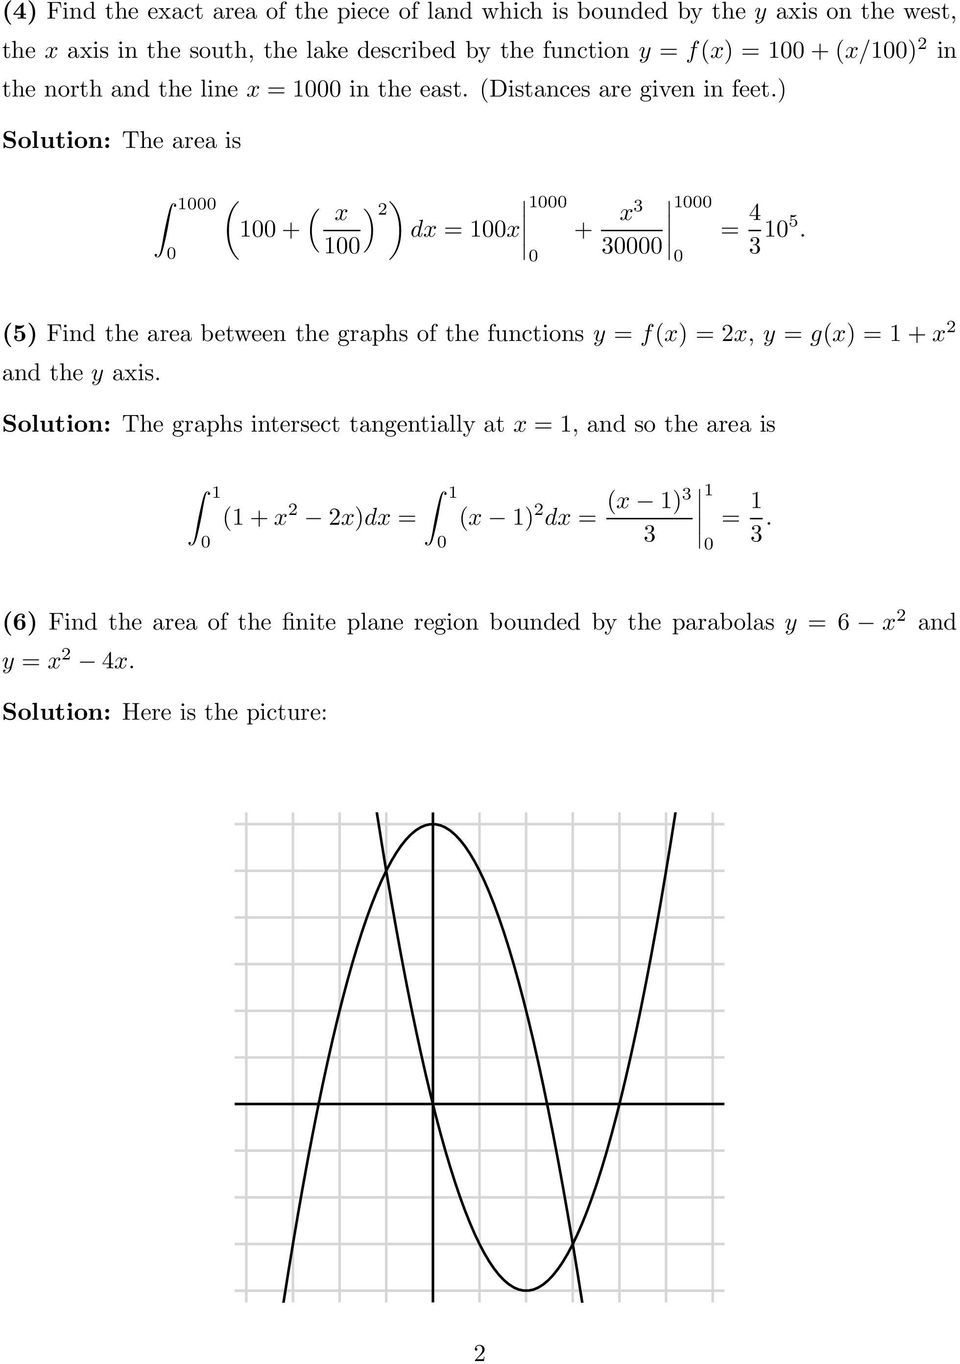 (5) Find the area between the graphs of the functions y = f(x) =x, y = g(x) =1+x and the y axis.